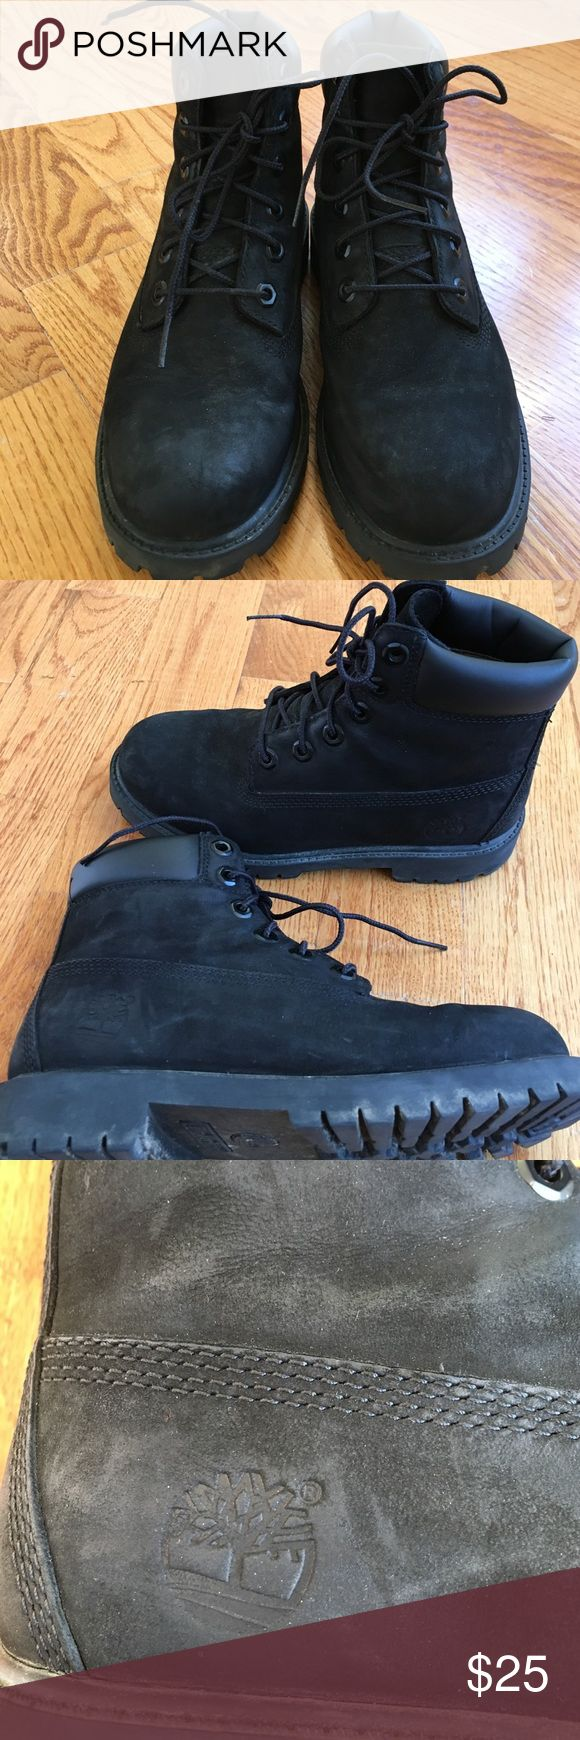 Timberland boys boots Boys timberland boots Shoes Boots